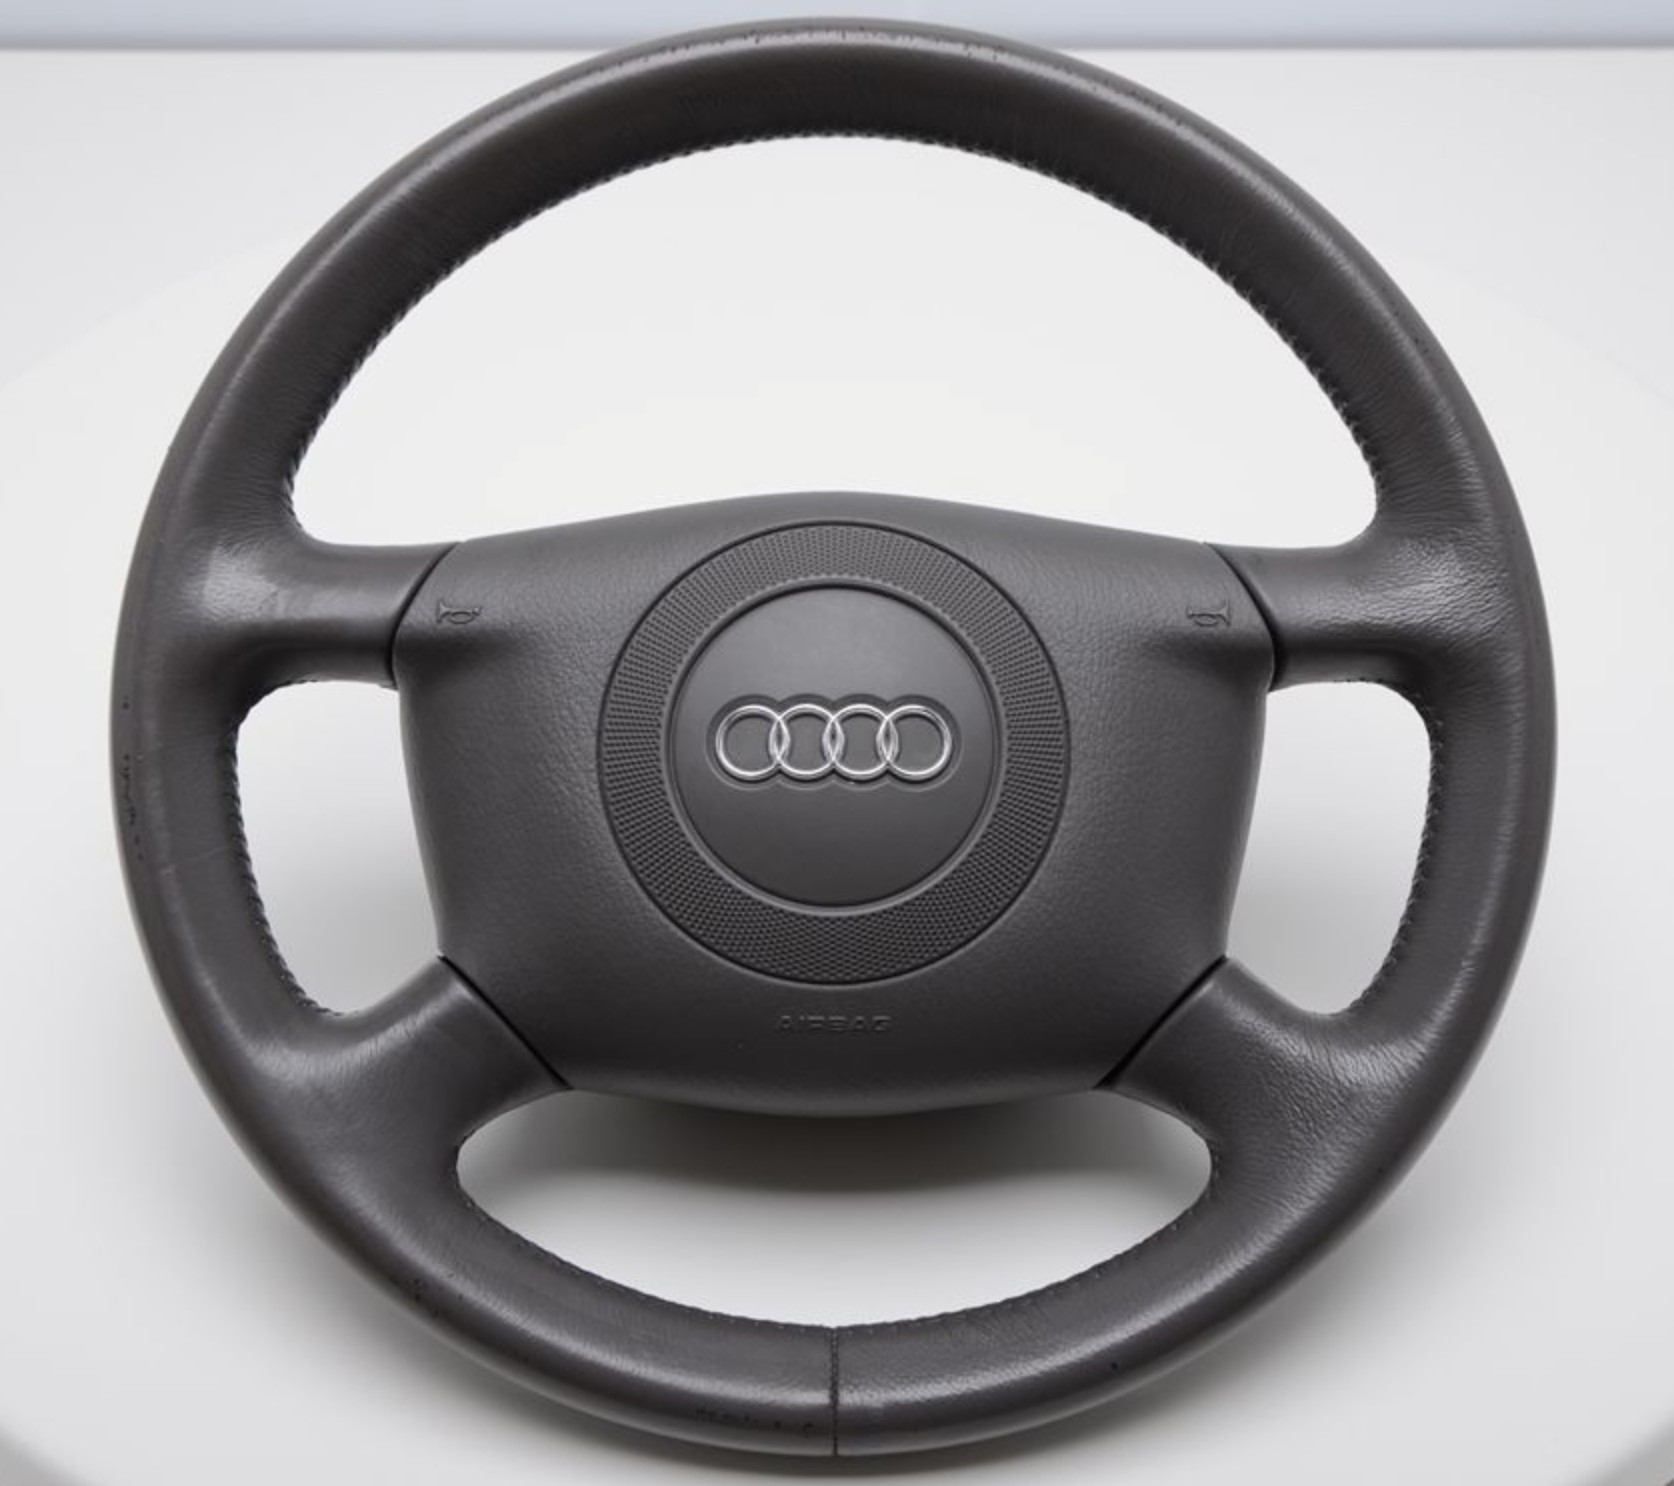 Steering Wheel Airbag With Controls On Steering Wheel For Audi A4 B6 Sale Auto Spare Part On Pieces Okaz Com